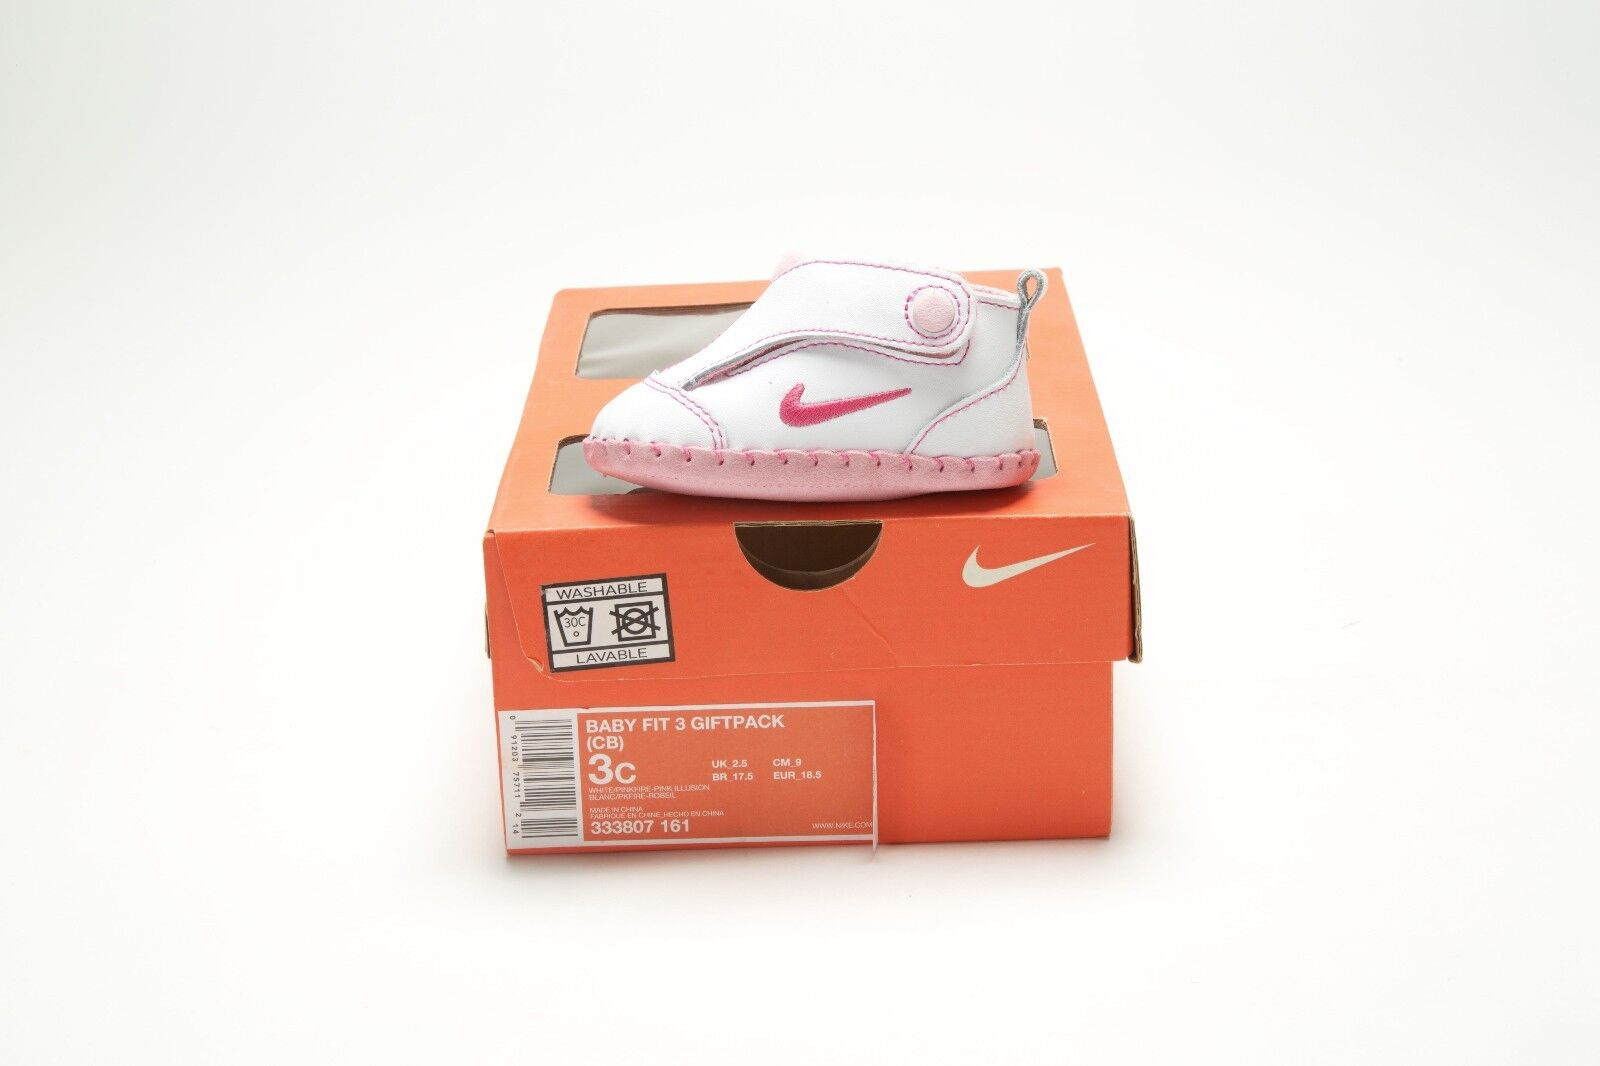 VINTAGE 2008 NIKE BABY FIT  GIFT PACK (CB) 333807-161 WHITE/PINKFIRE (MSRP: $30)